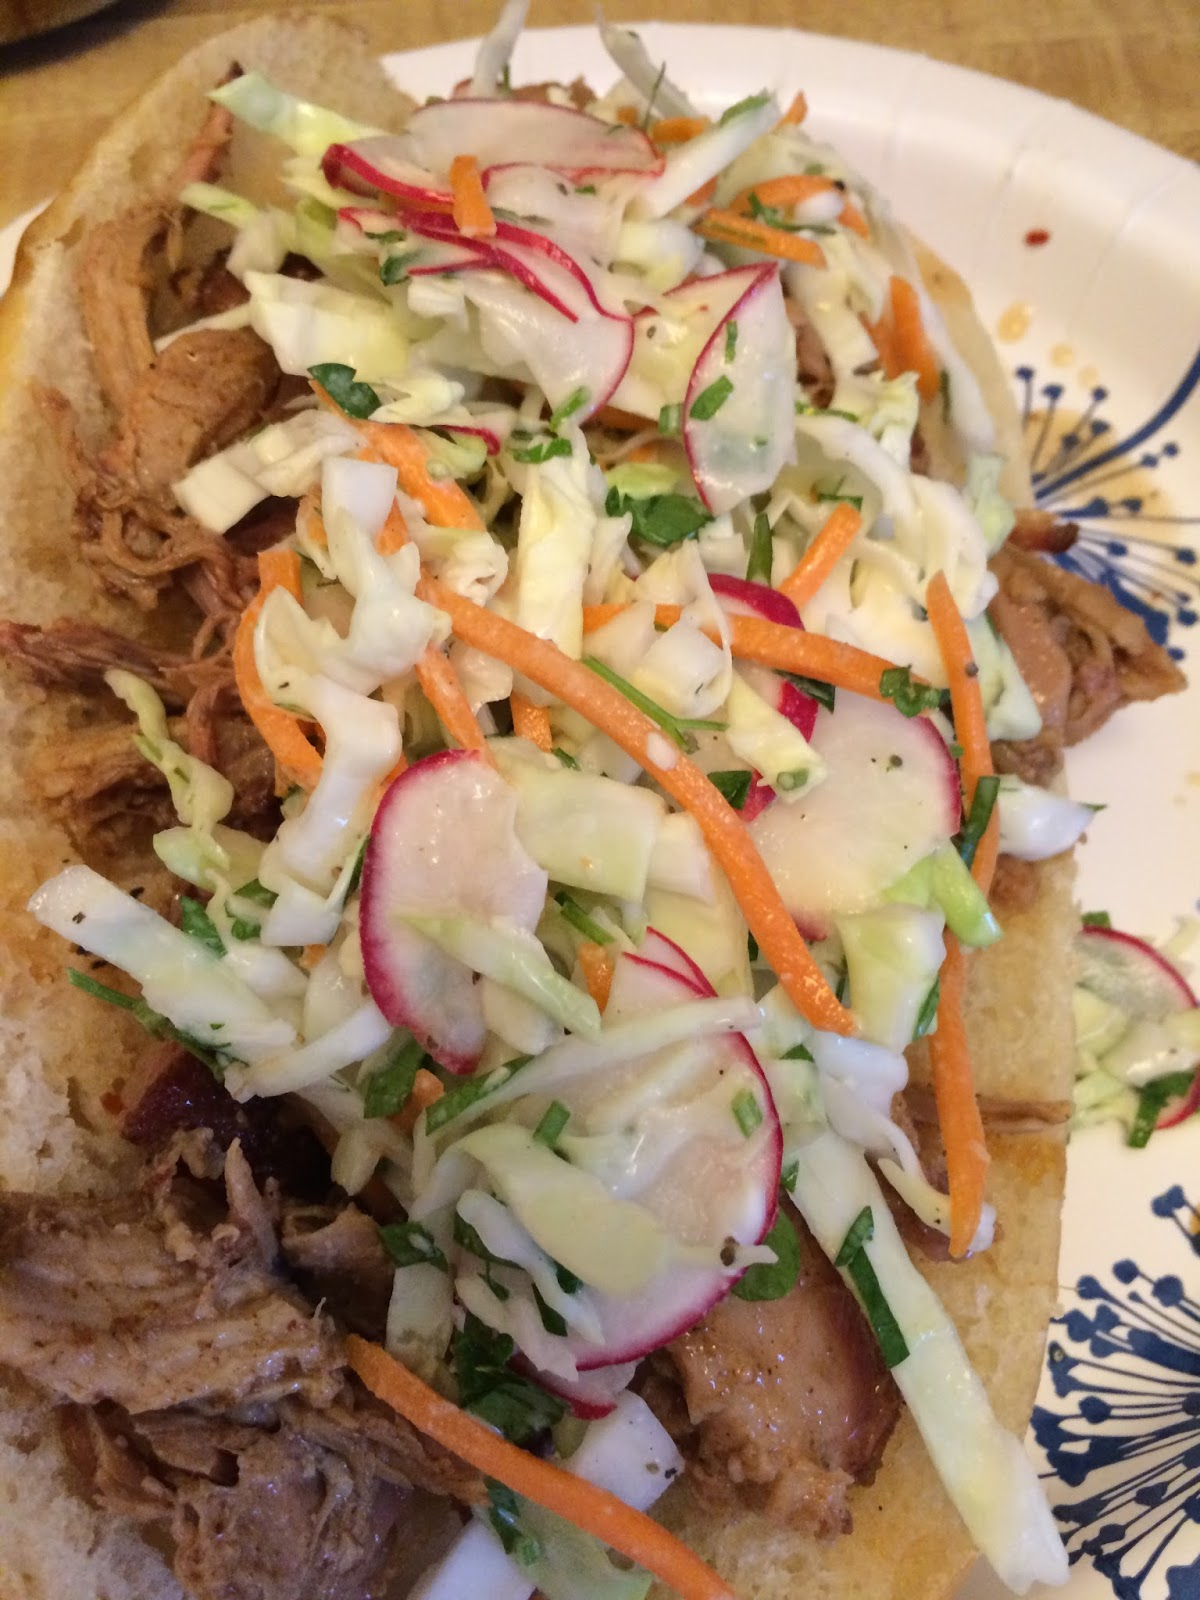 Nana's Blue and White Dishes: Pulled Pork Shoulder